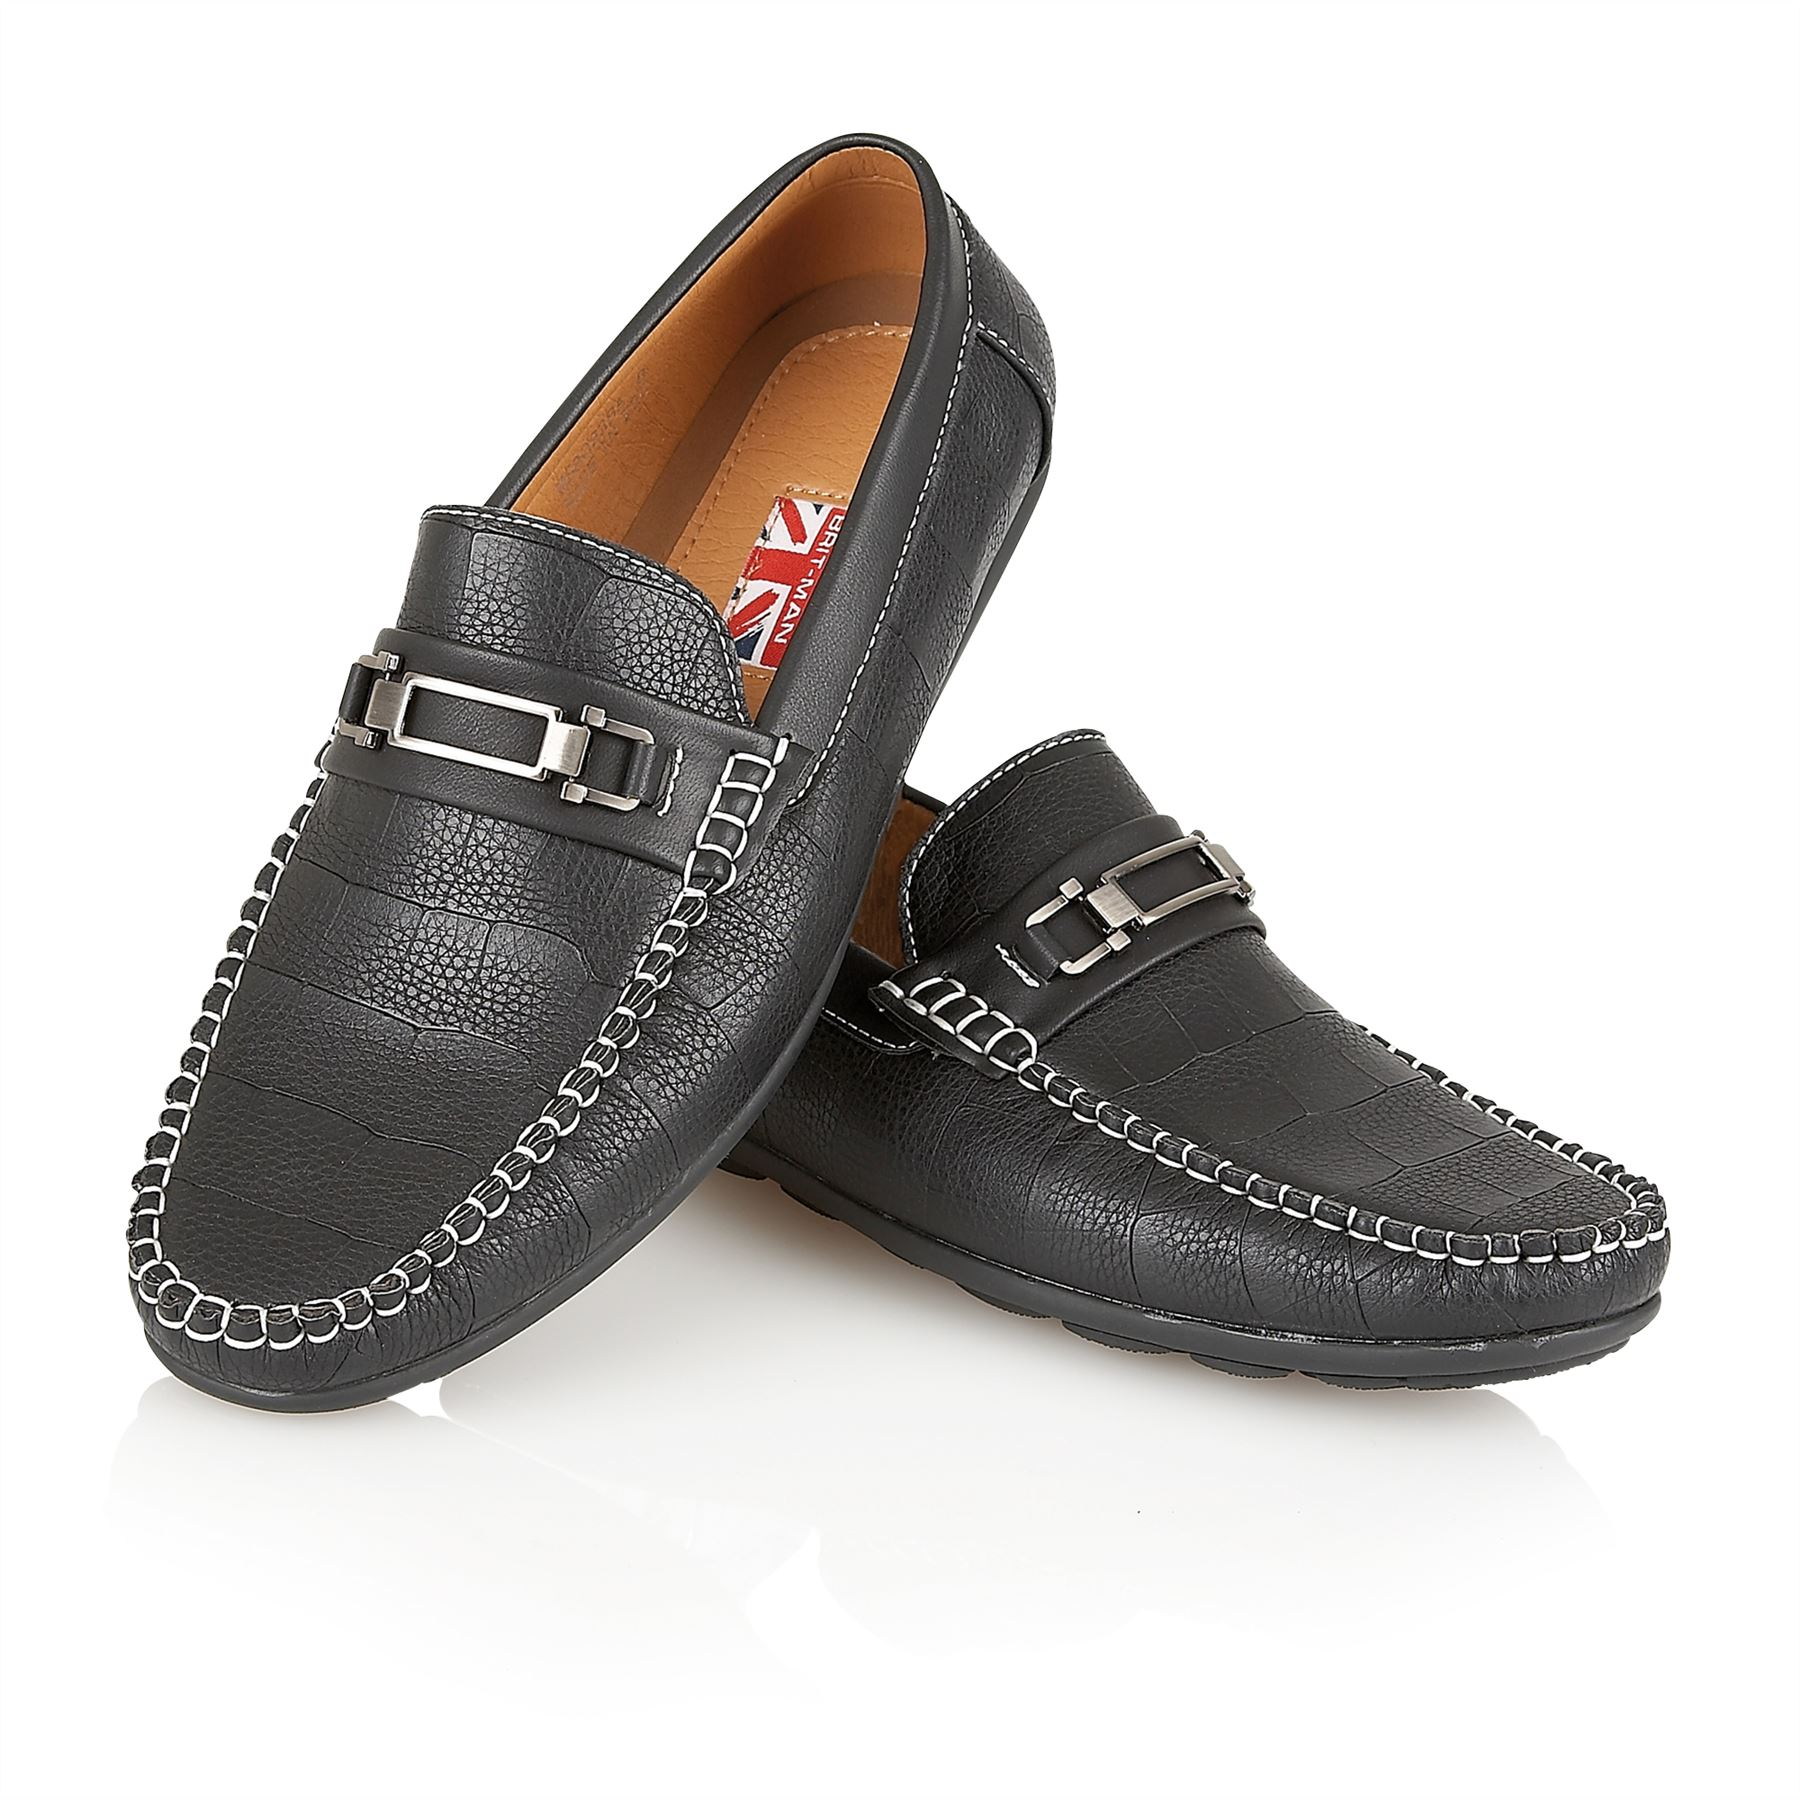 mens designer leather look italian loafers casual moccasin